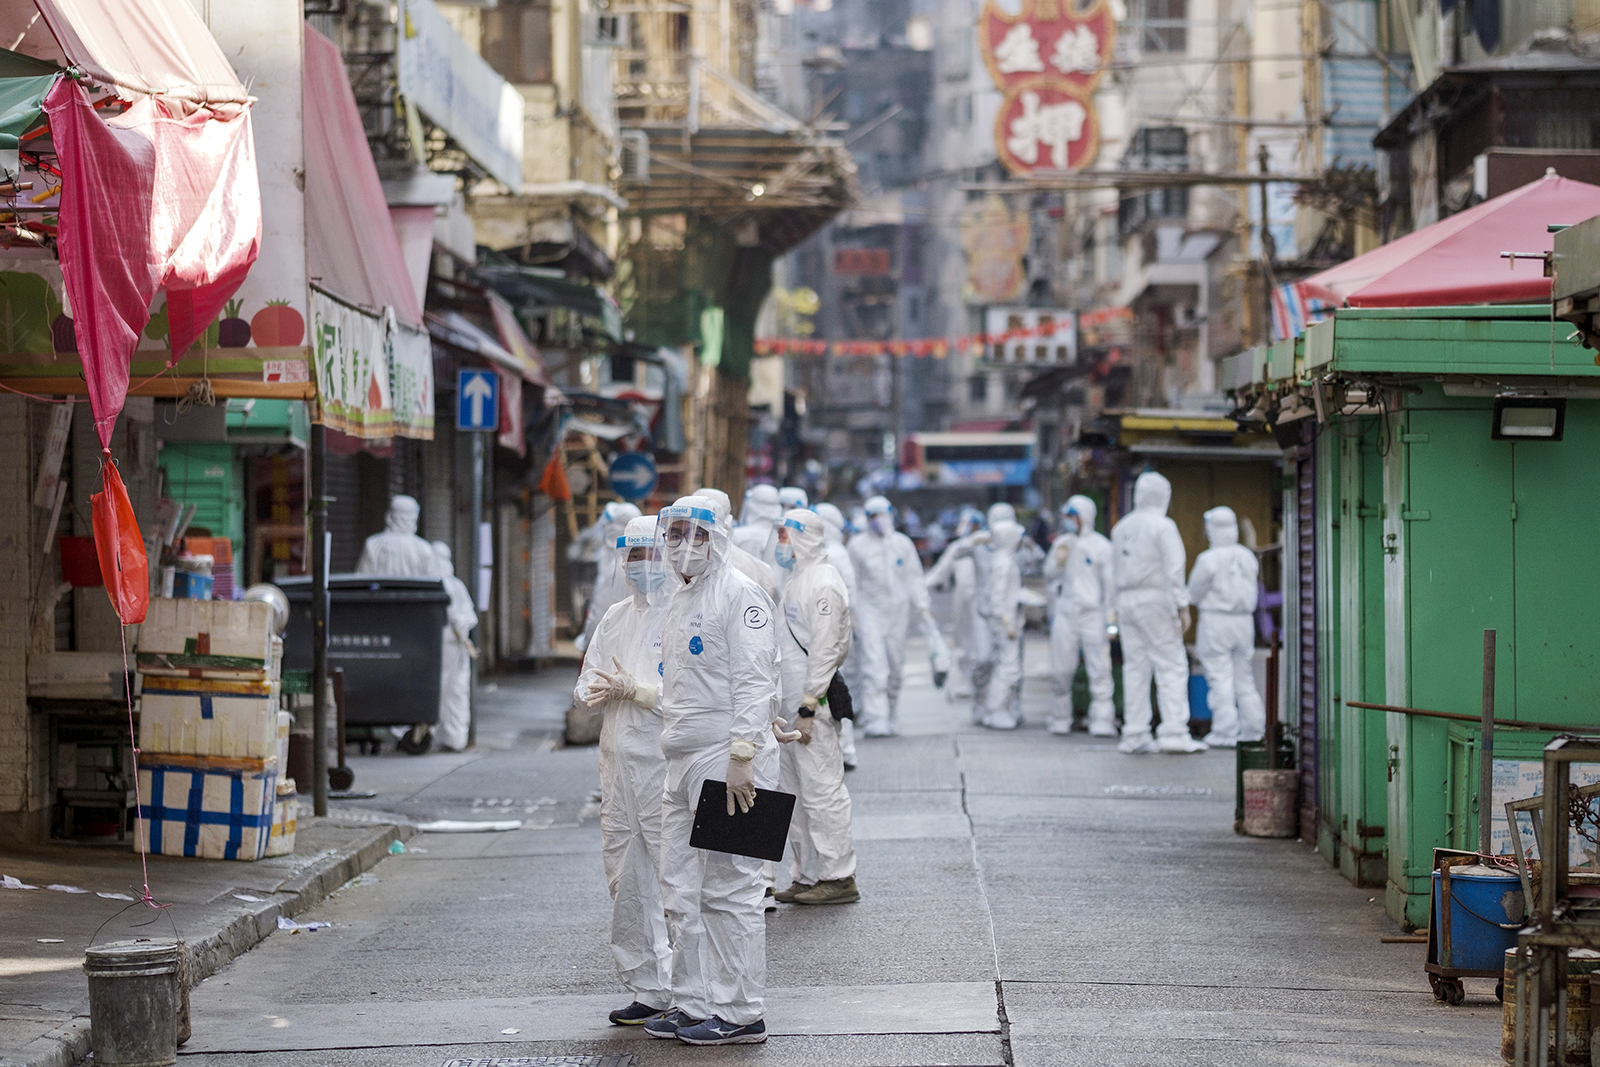 Government workers wearing personal protective equipment in the locked-down Jordan neighborhood of Hong Kong, on January 23.